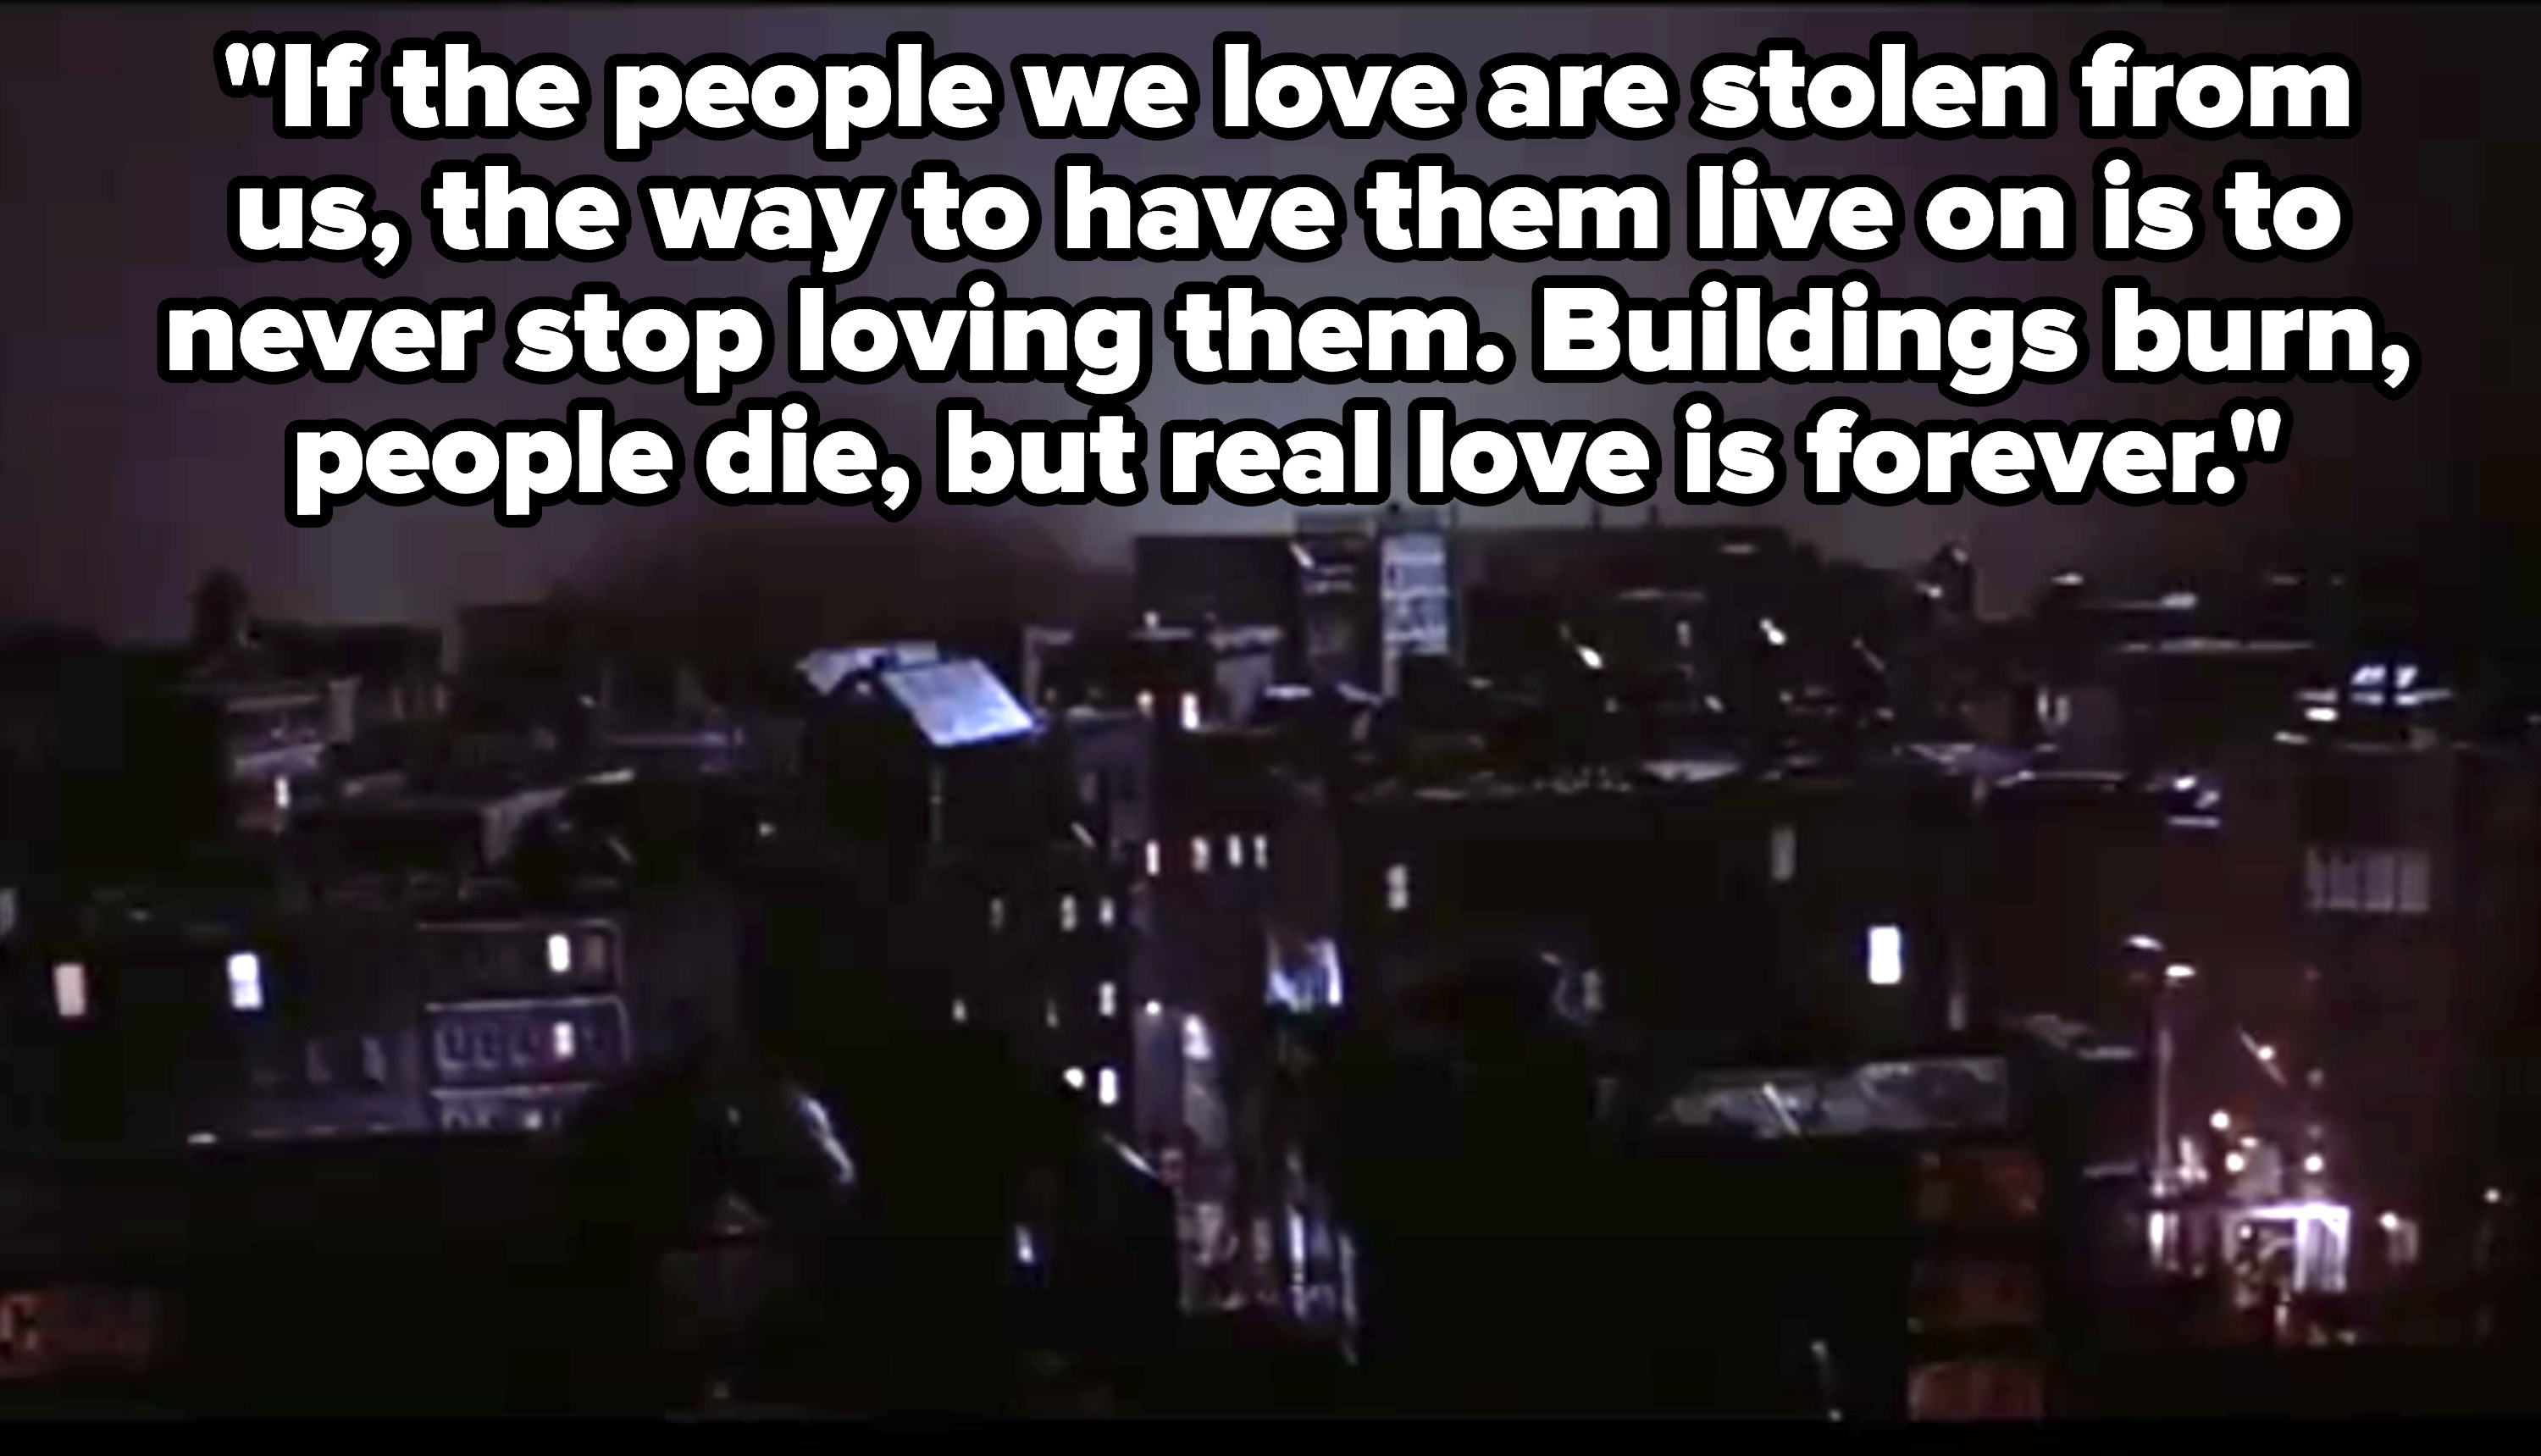 """Sarah says, """"If the people we love are stolen from us, the way to have them live on is to never stop loving them; buildings burn, people die, but real love is forever"""""""